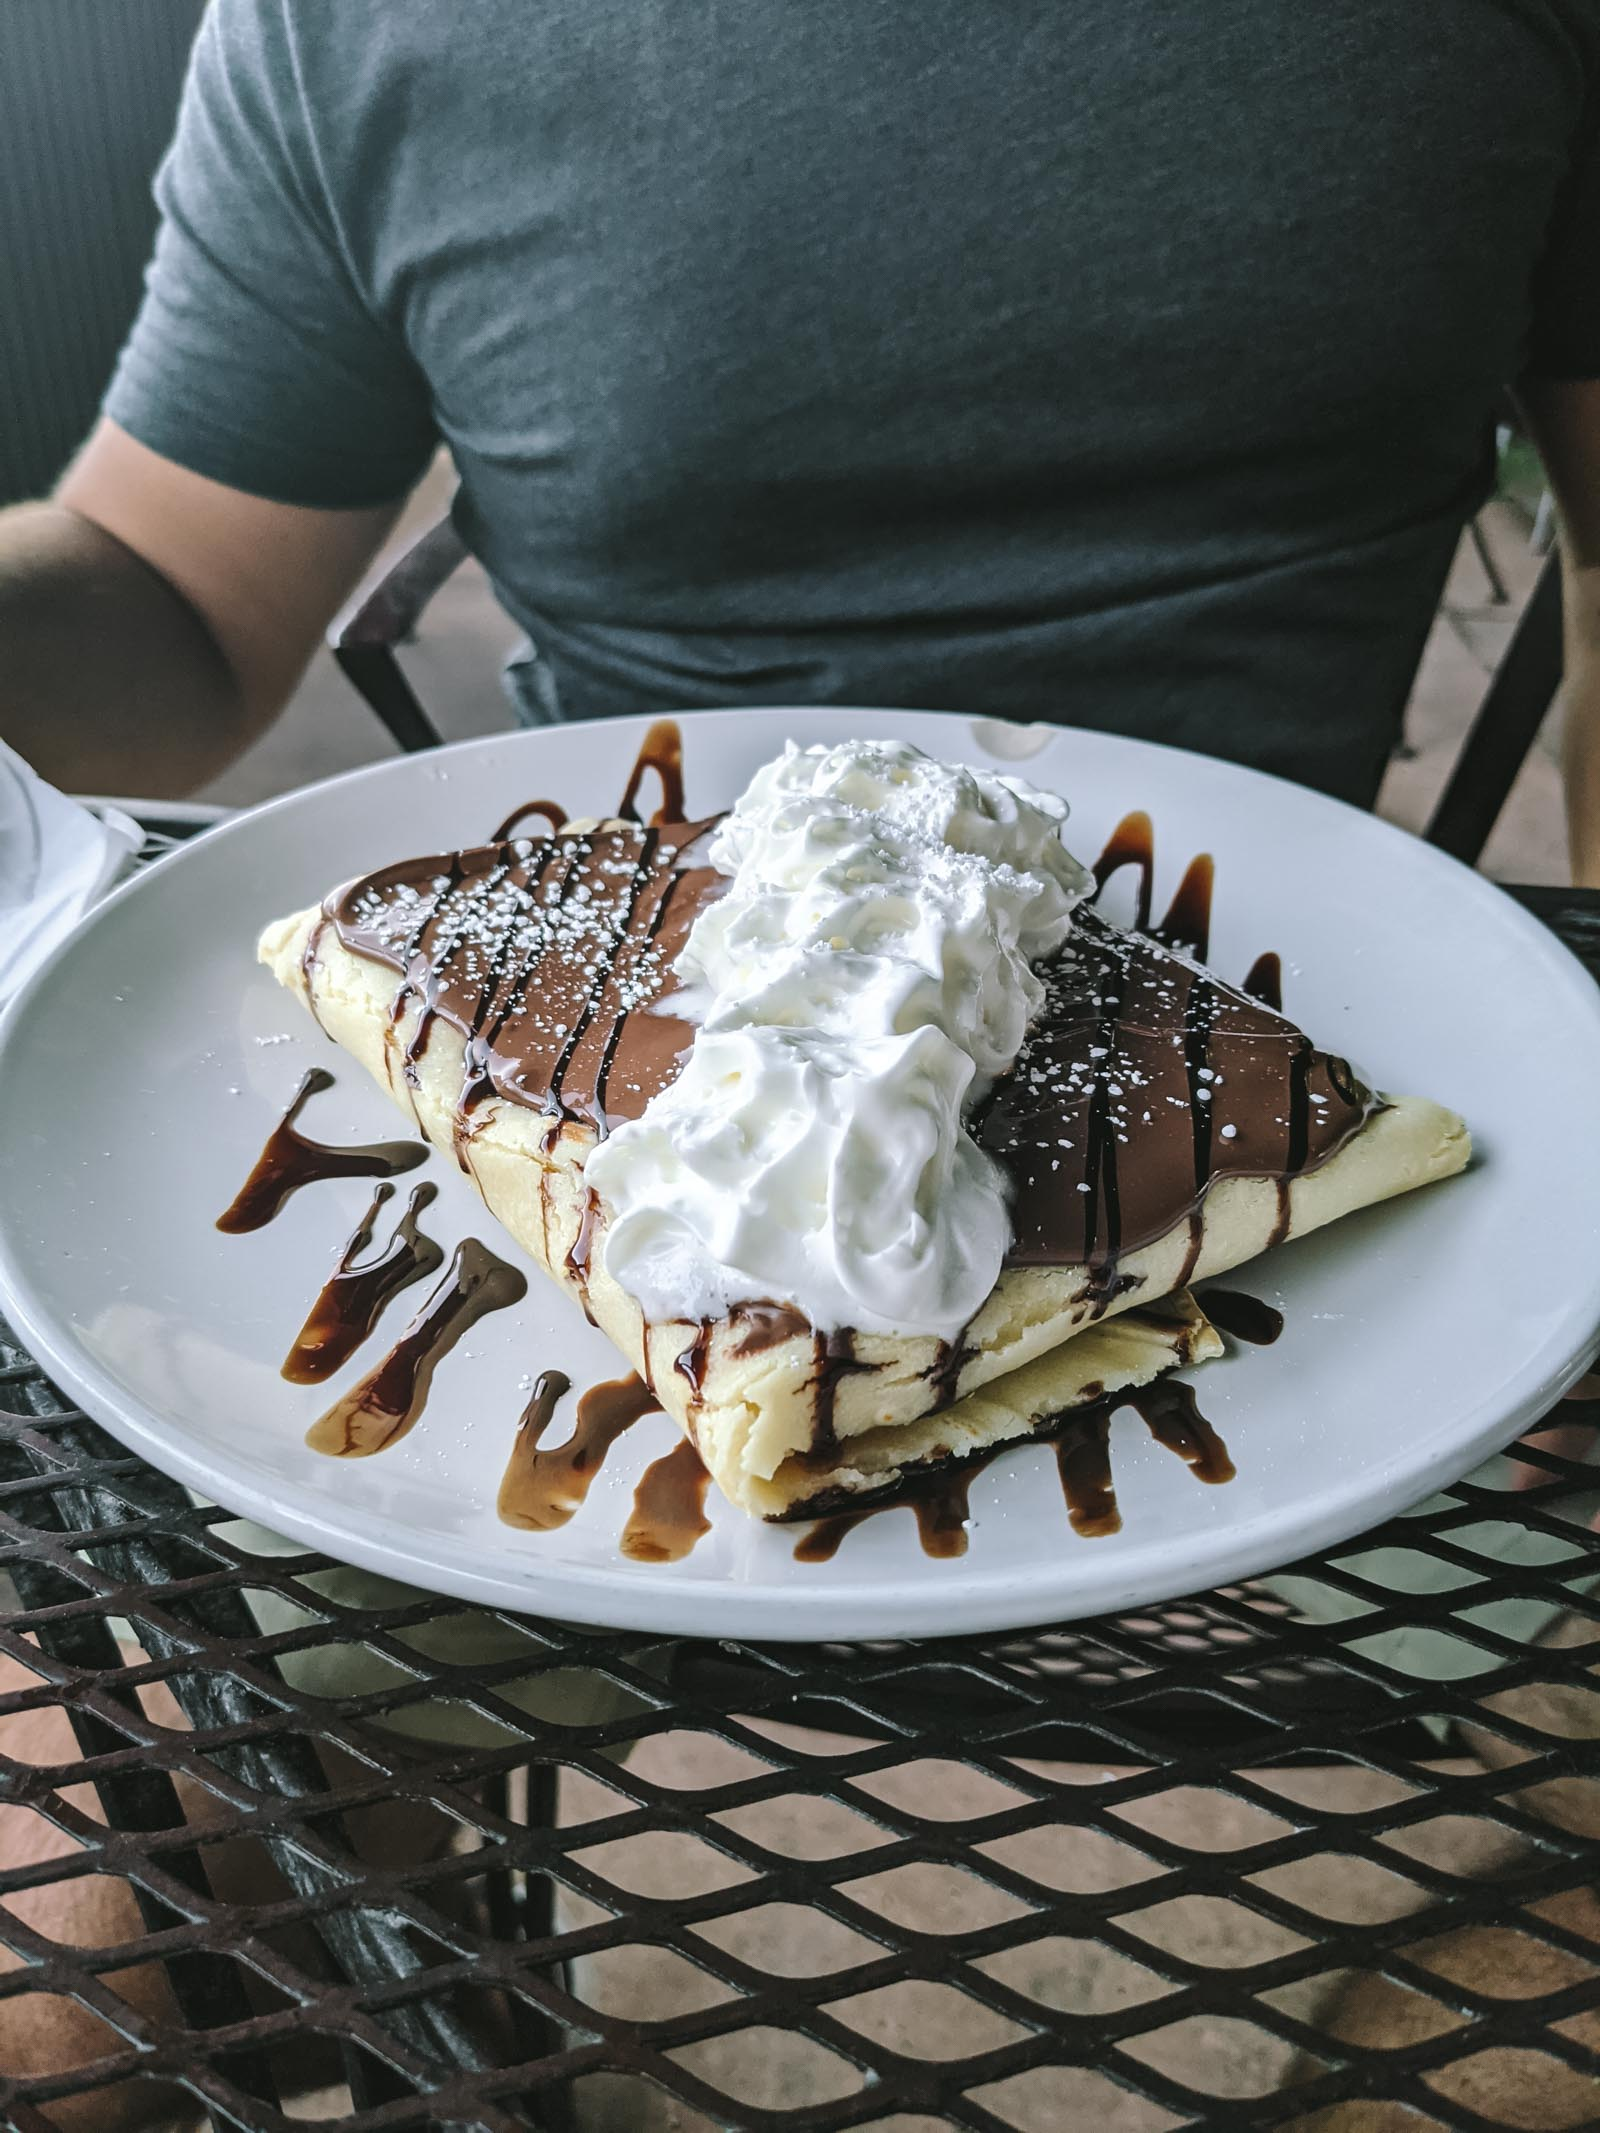 Crepes from MeMe's Cafe in Zion National Park